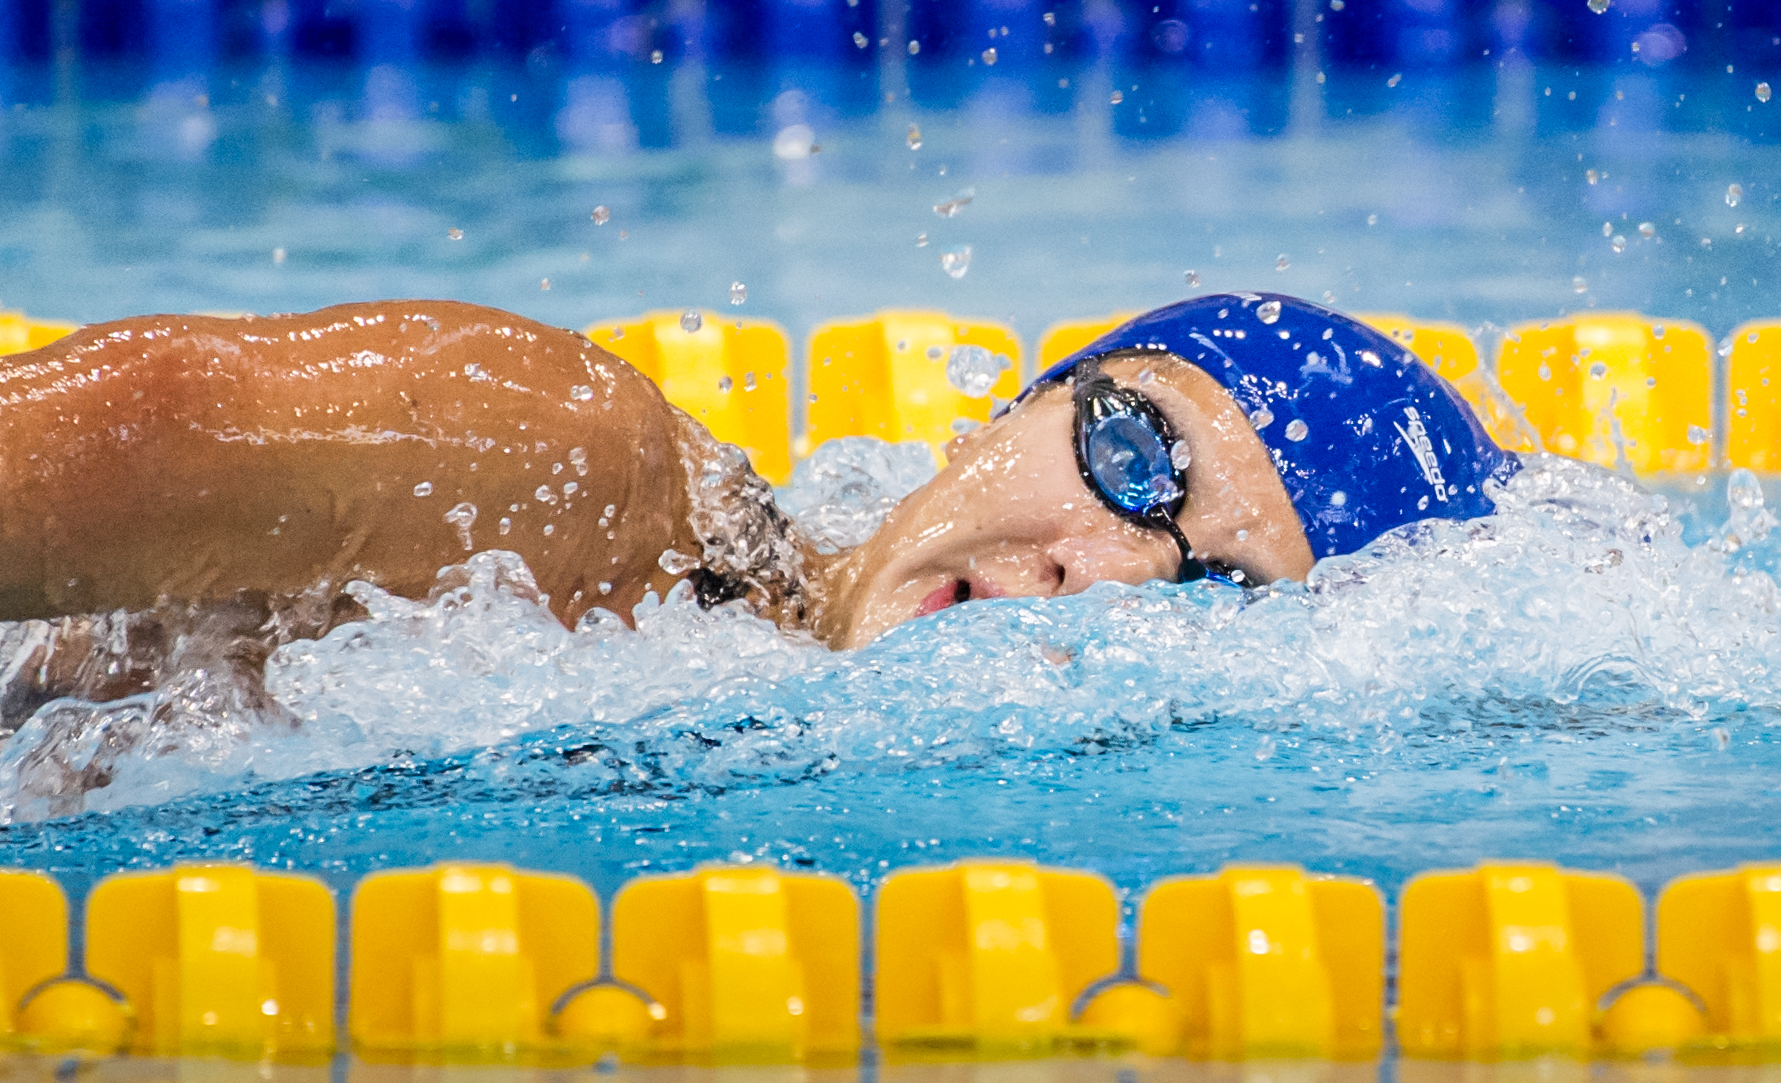 A Singaporean swimmer in action during the swimming competition of the ASEAN University Games at the OCBC Aquatic Centre.